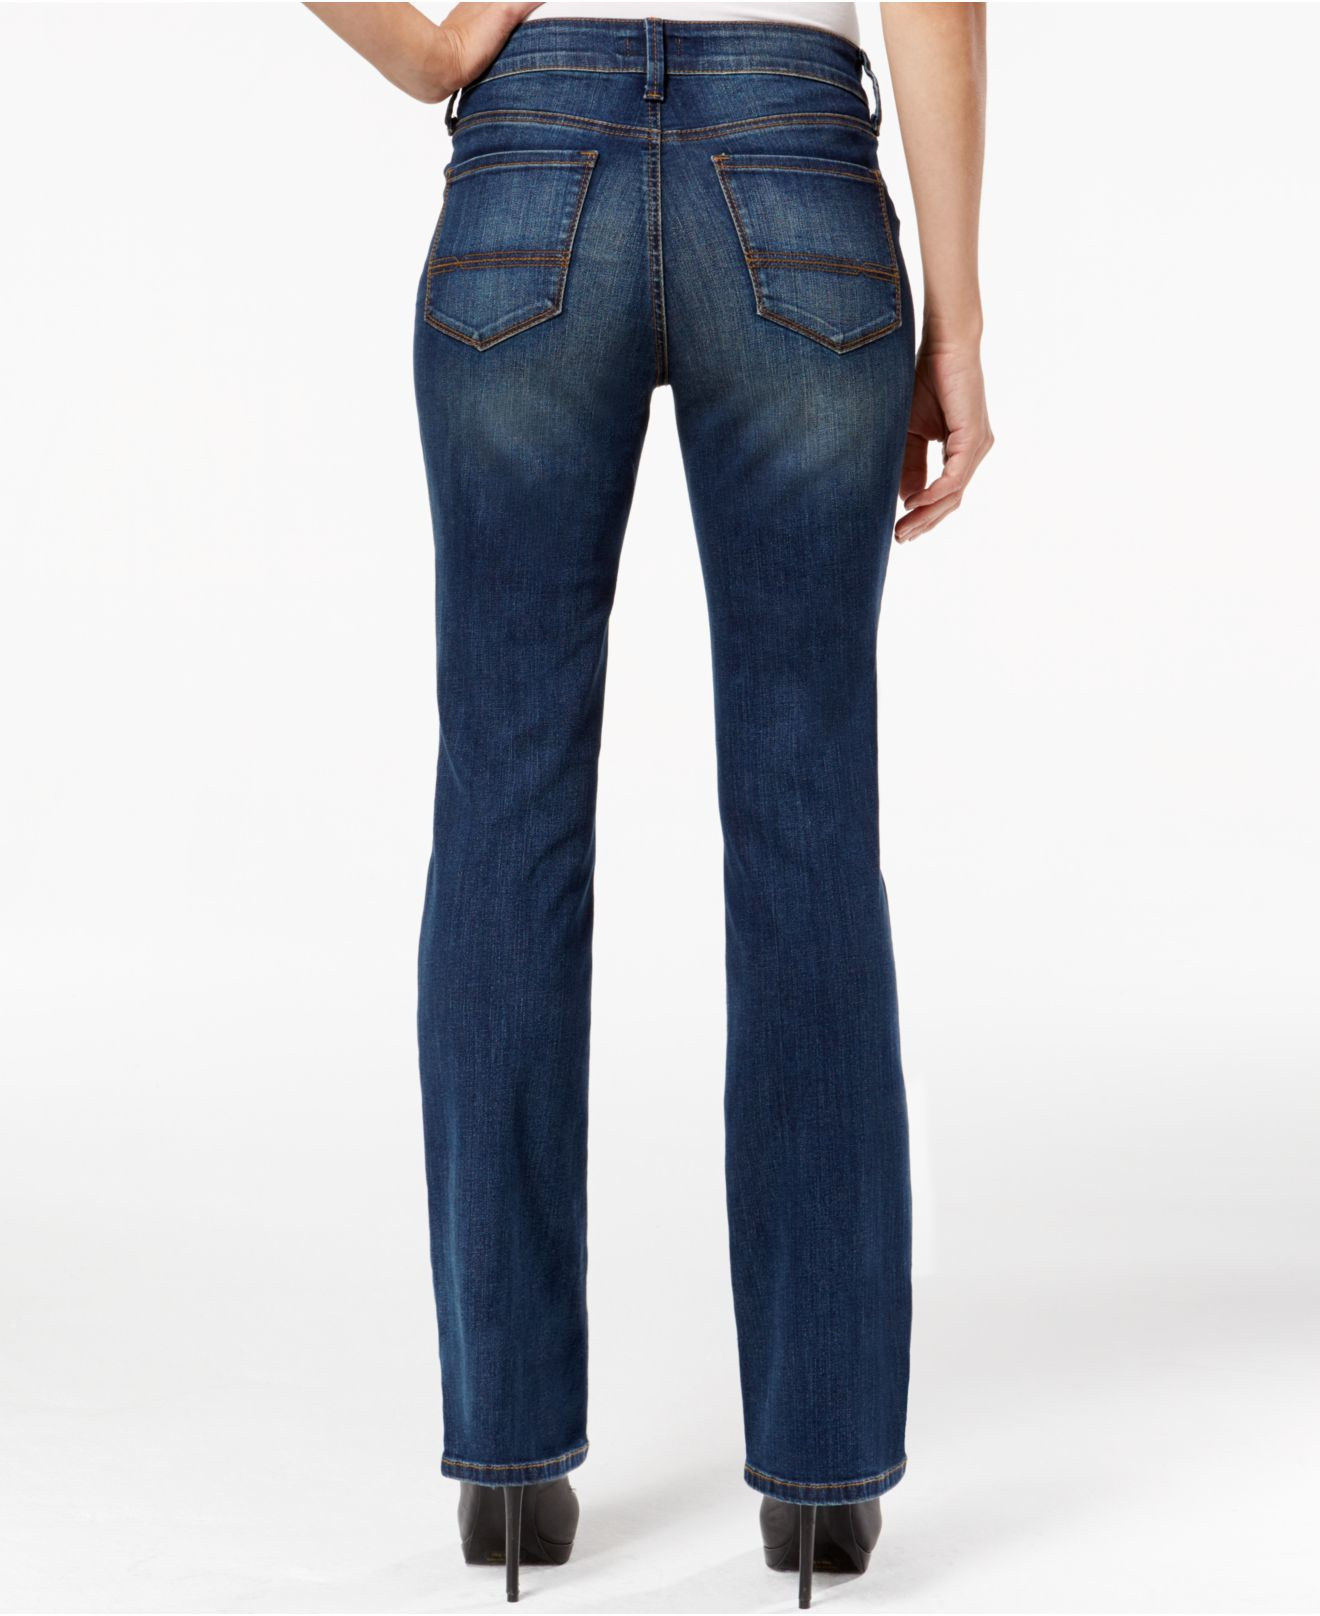 Visit NYDJ and shop petite bootcut jeans. Find the perfect fitting NYDJ bootcut jeans in petite sizes today. NYDJ.